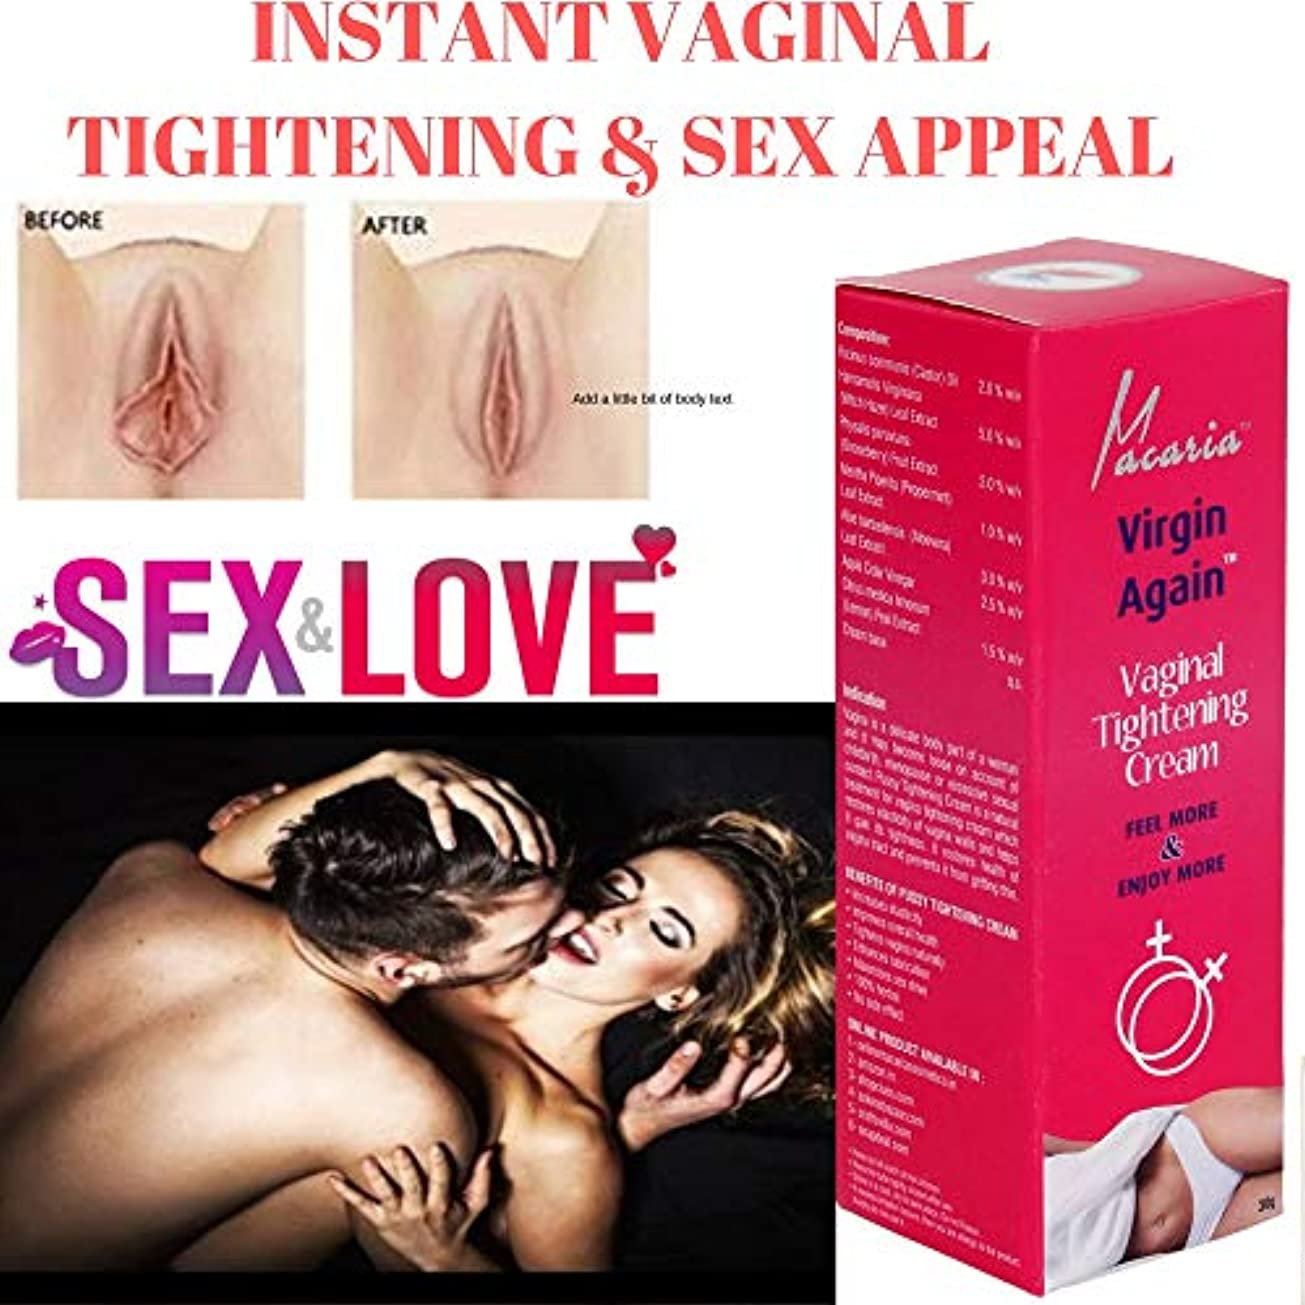 苦スラム街姿を消すVIRGIN AGAIN CREAM (VAGINAL VAGINA TIGHTENING CREAM GEL LOTION